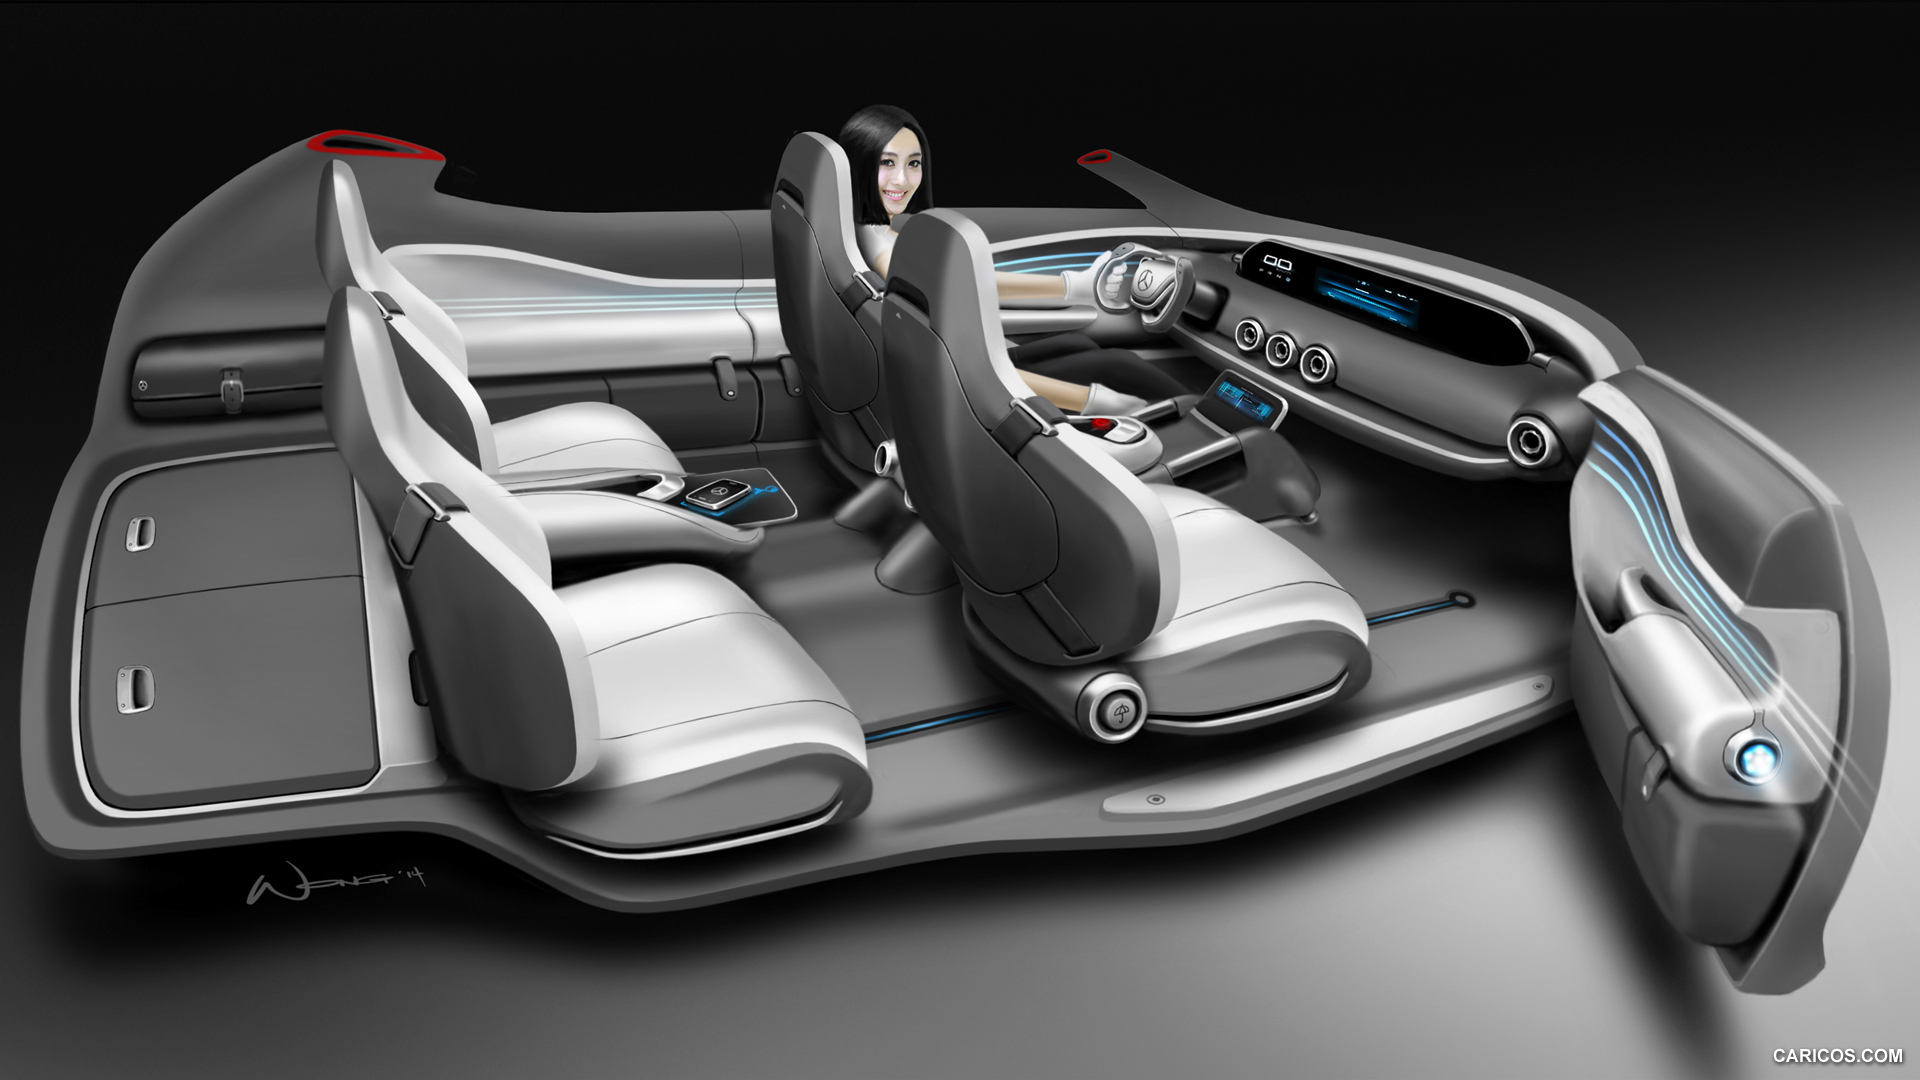 Mercedes benz vision g code suc photos photogallery with for Mercedes benz model codes